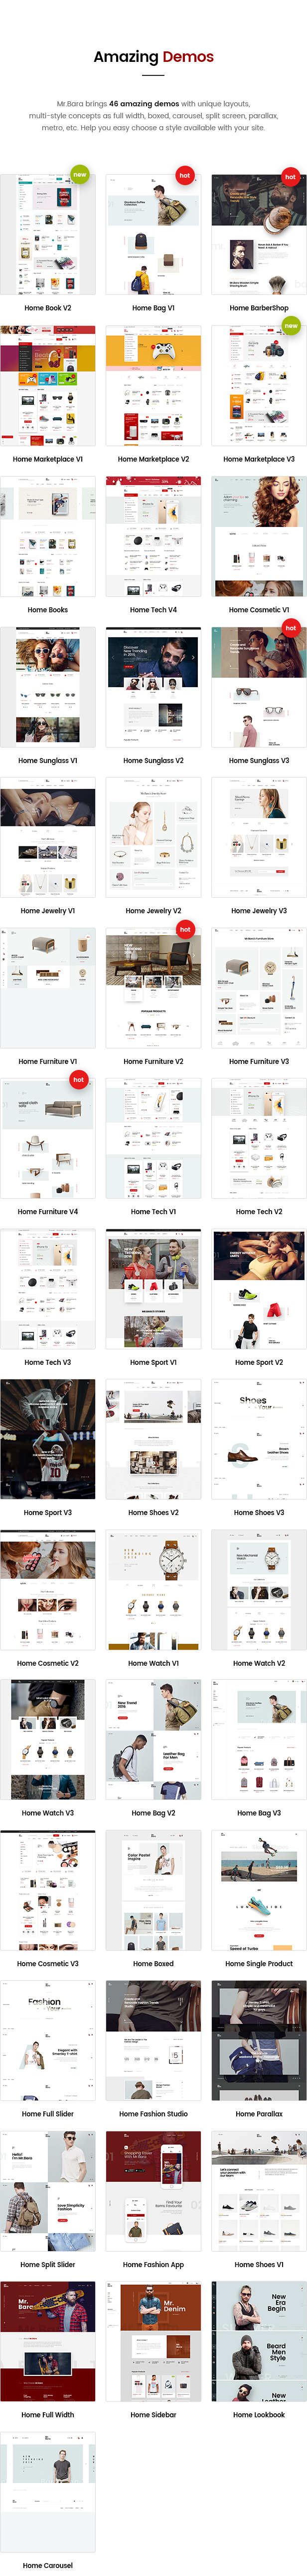 Mr.Bara - Responsive Multi-Purpose eCommerce WordPress Theme - 7